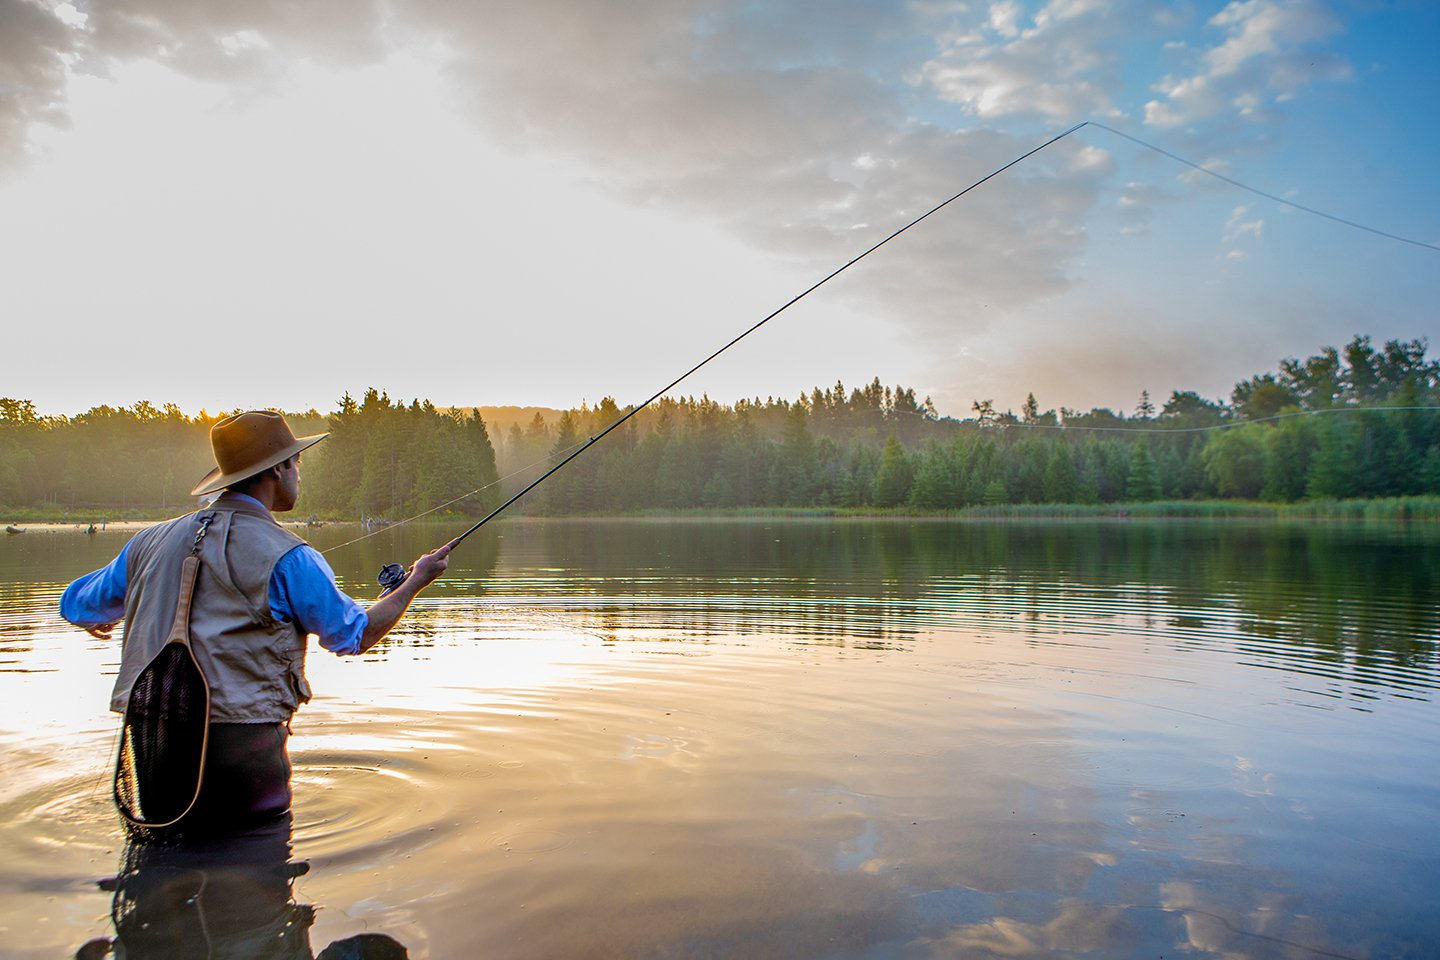 a lone fly fisherman casting while wading in a lake